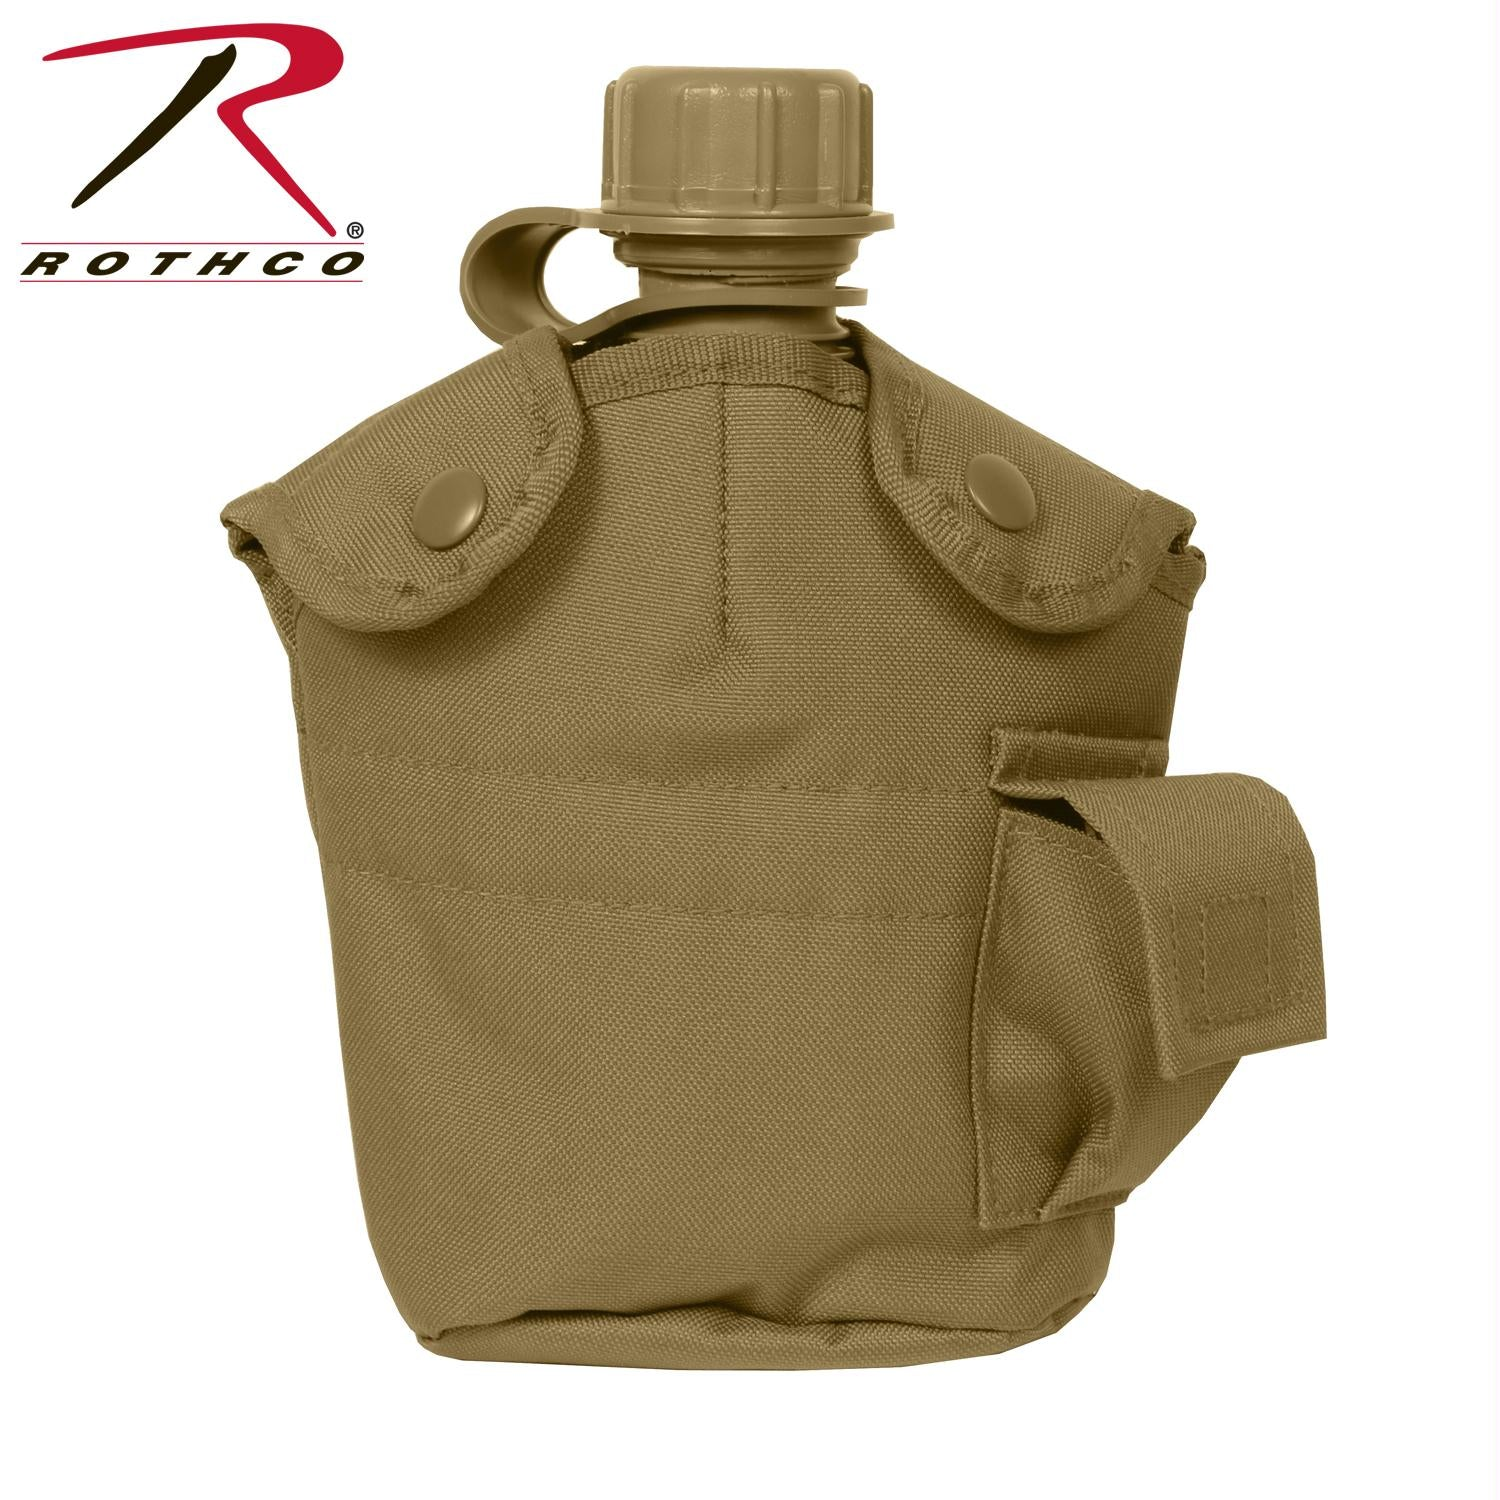 Rothco GI Style MOLLE Canteen Cover - Coyote Brown